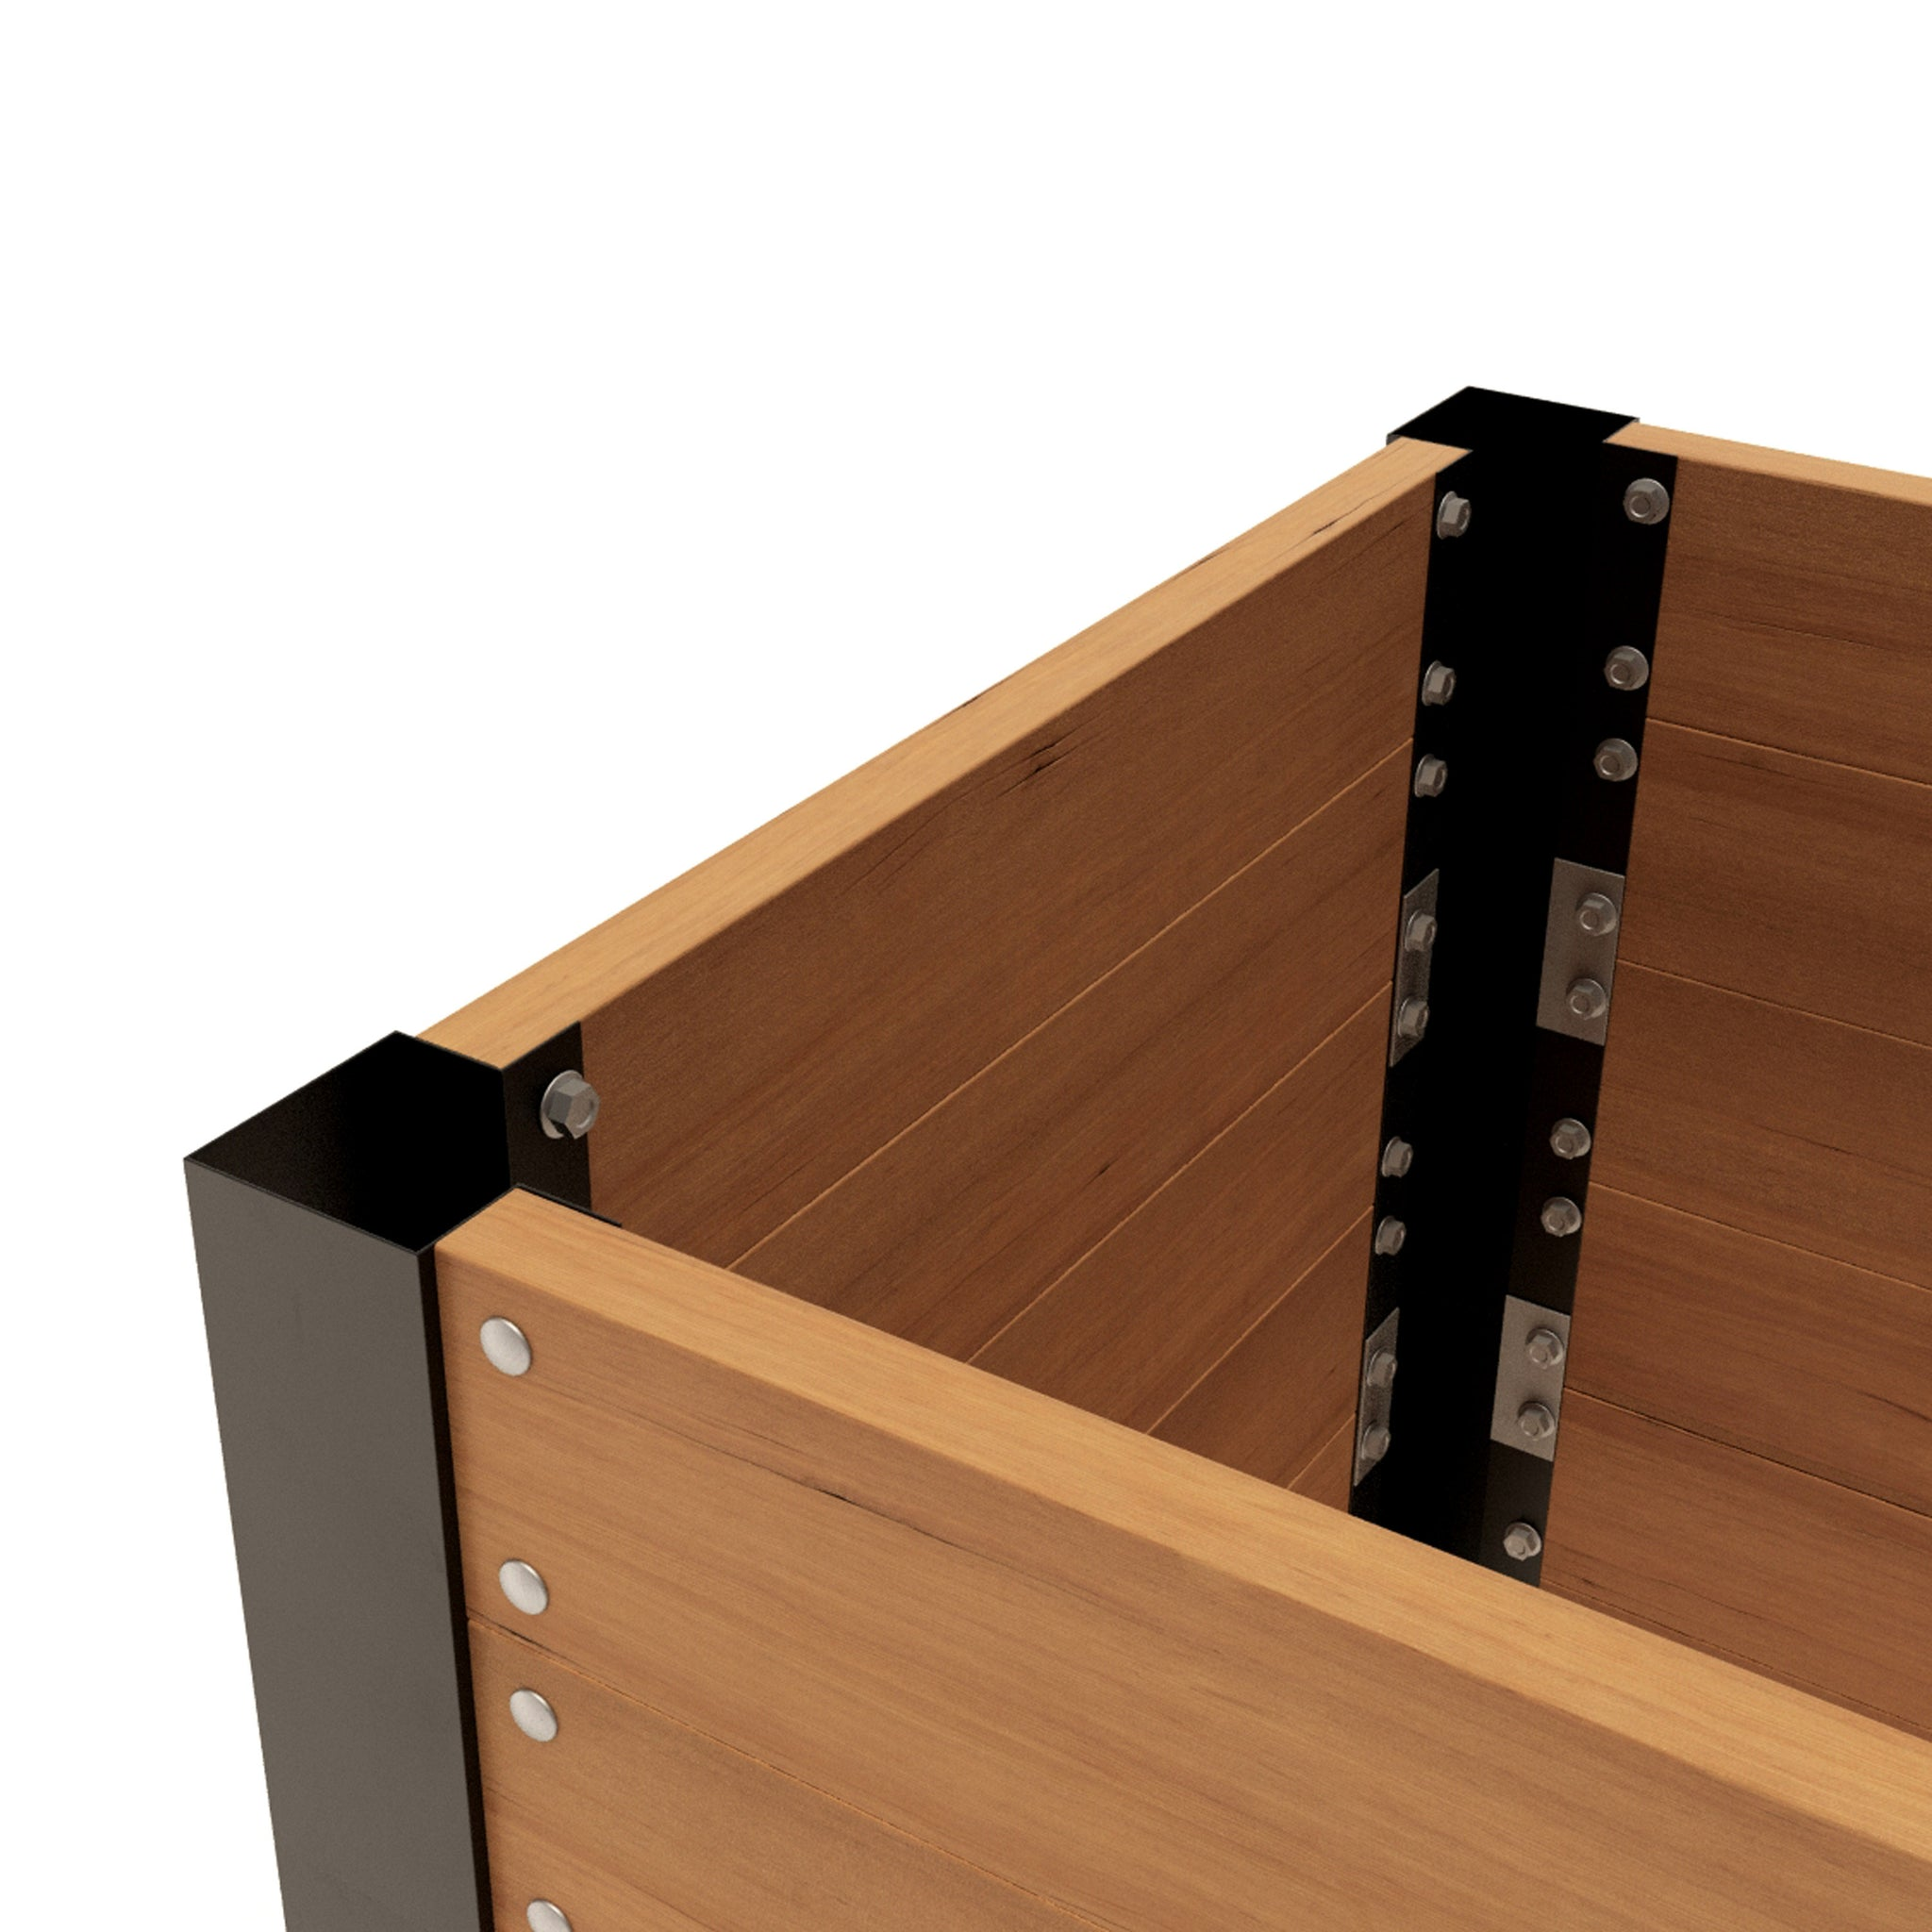 "LIFTED EARTH GARDEN BOX HARDWARE - 33"" CORNER BRACKET KIT WITHOUT SPIKES"